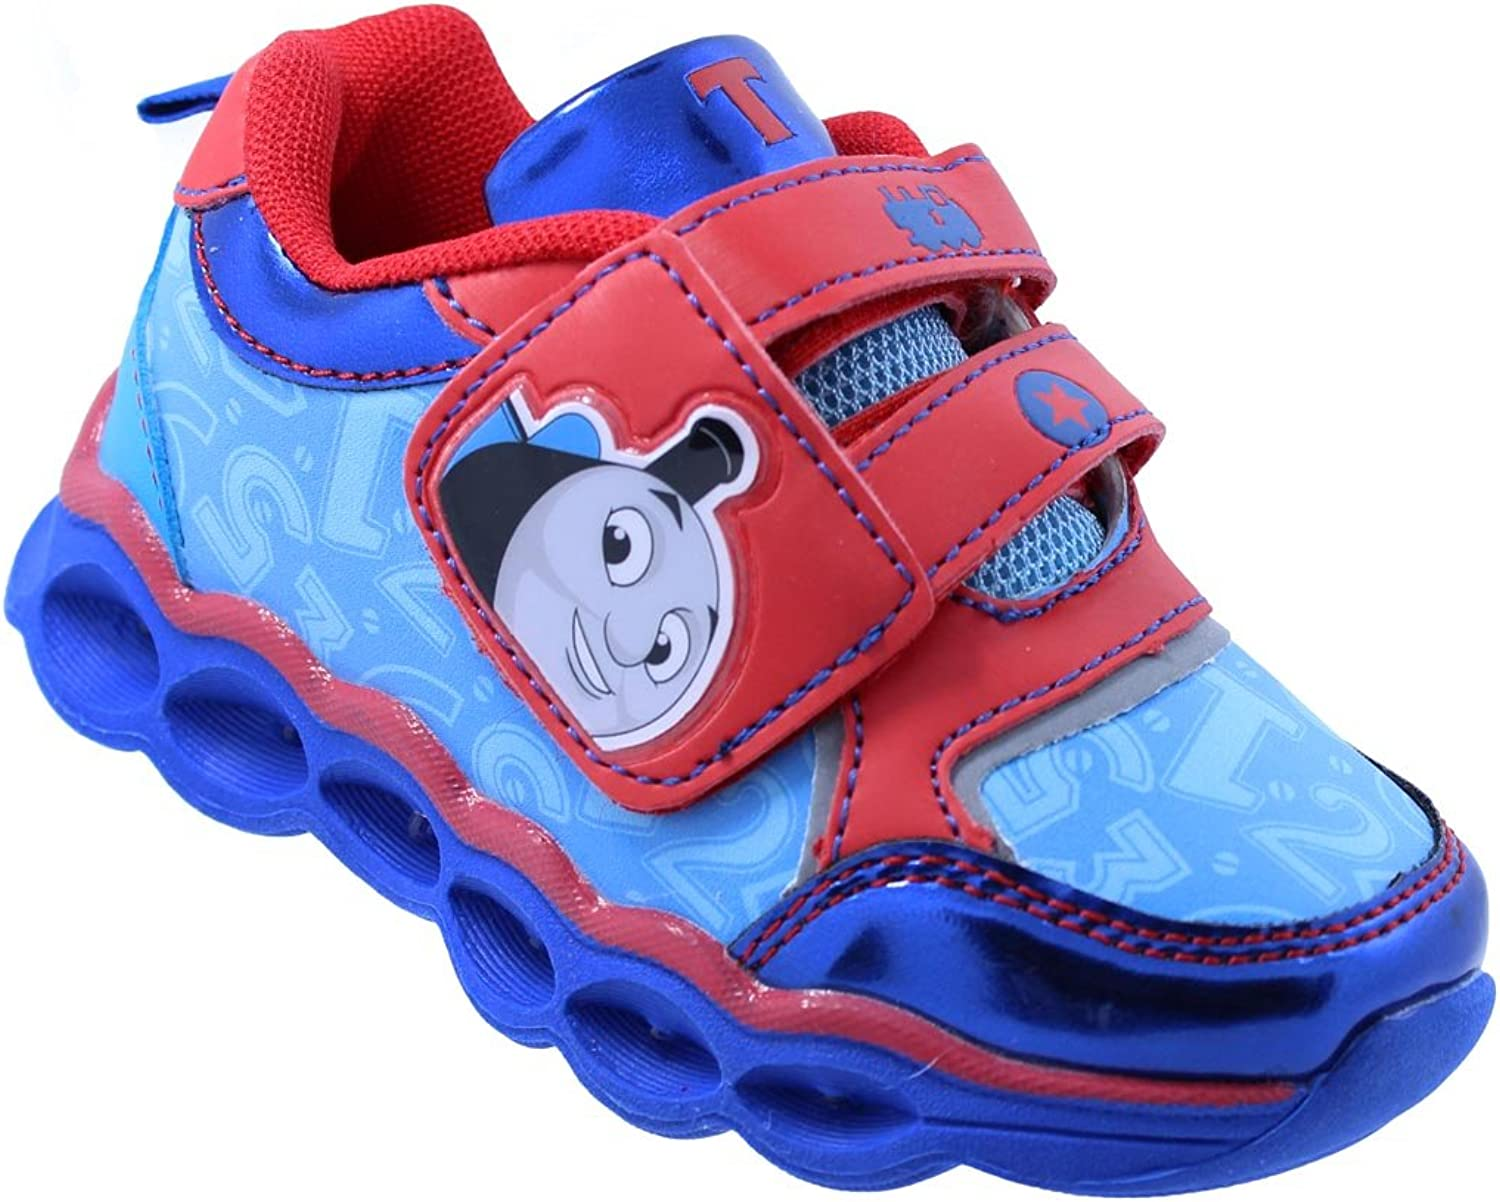 Thomas The Train Toddler Boys' Light-Up Athletic Running shoes Sneaker Red blueee